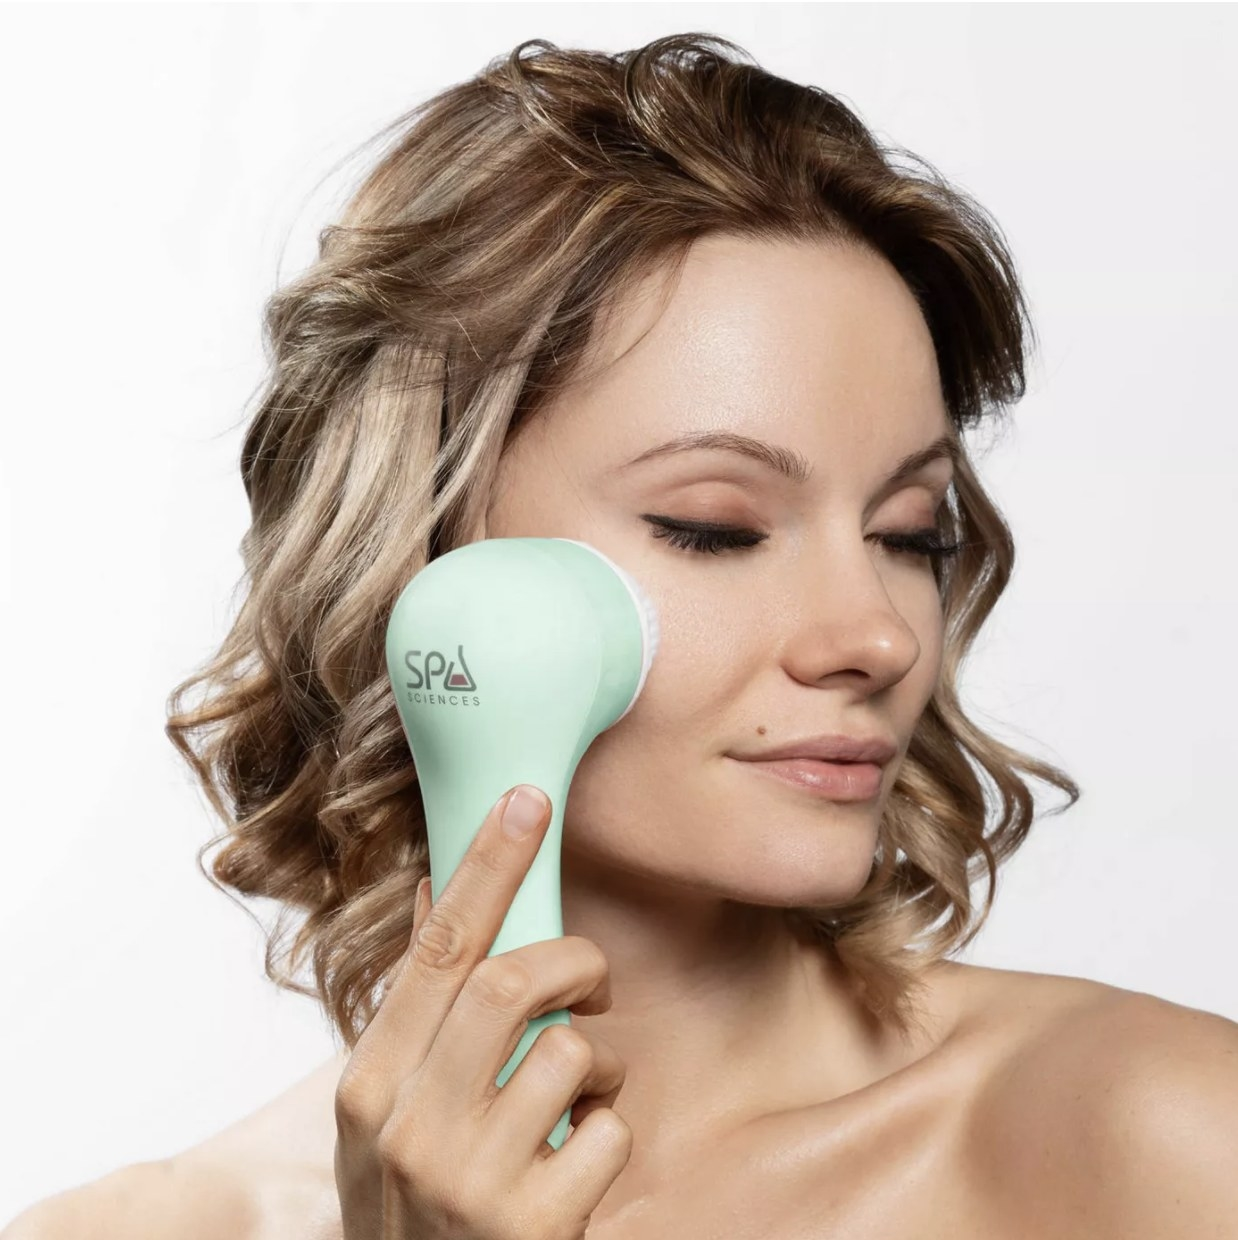 A model using the cleansing brush on their face